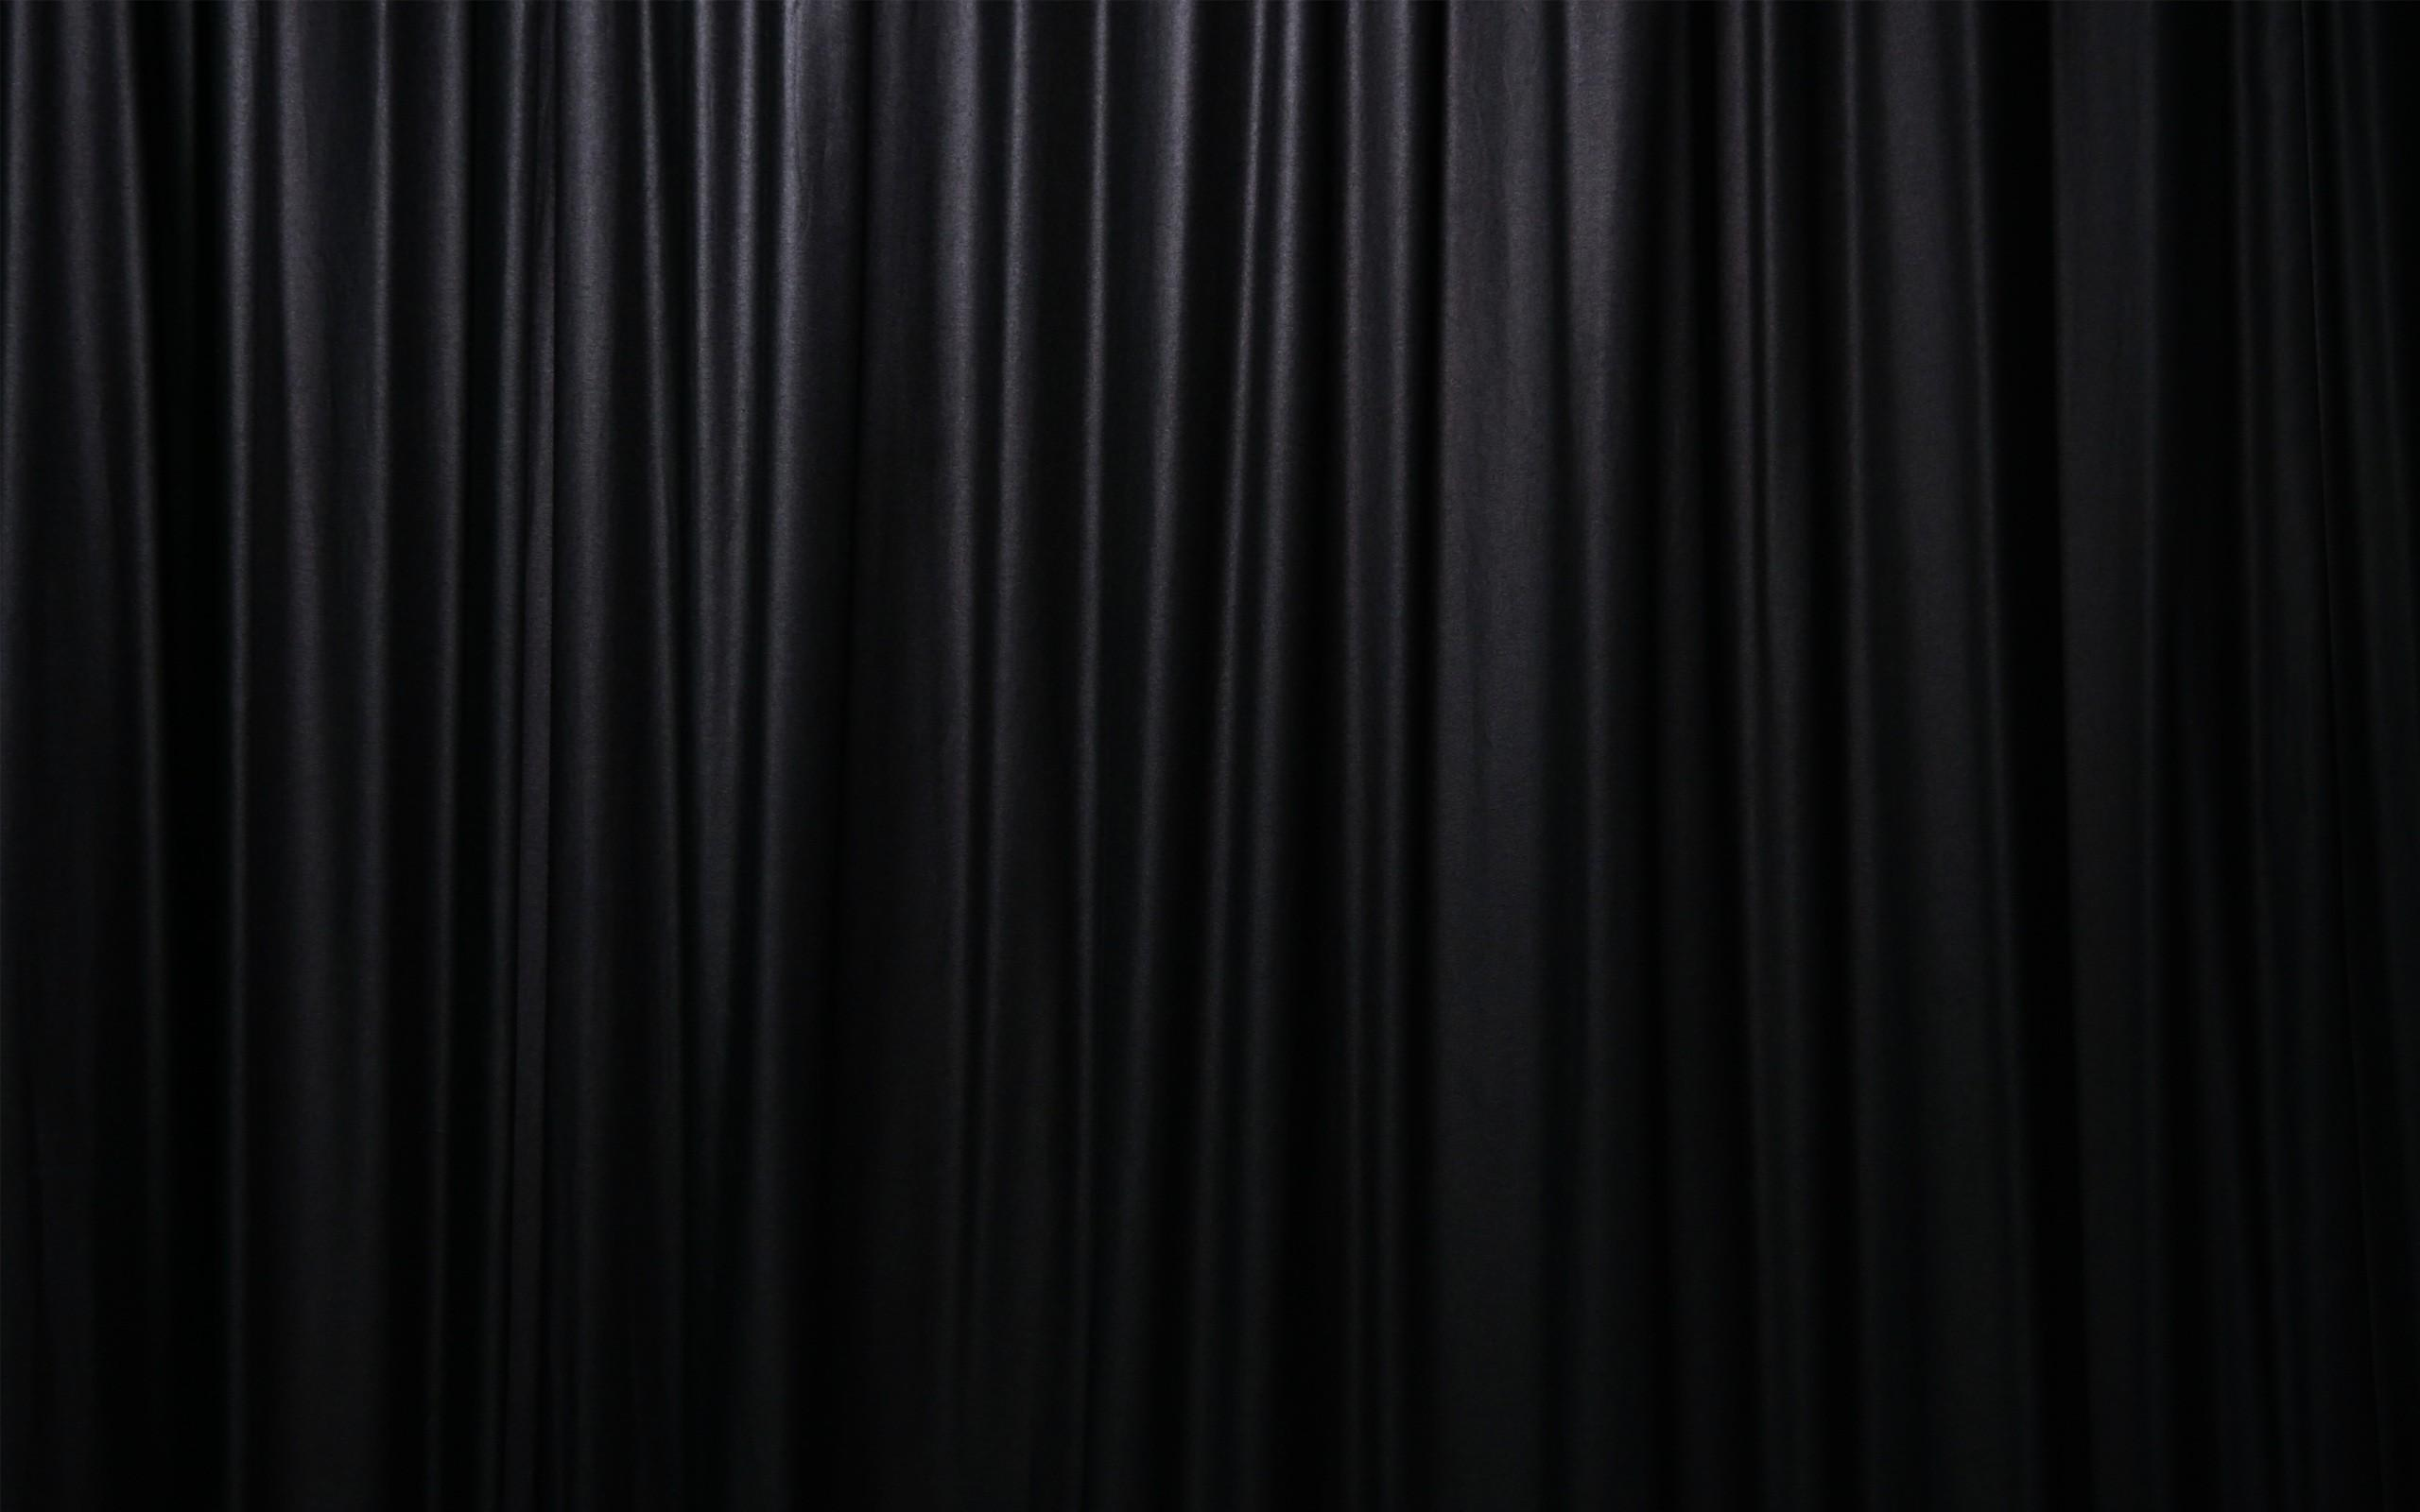 Curtain Blind Black Asacocirco